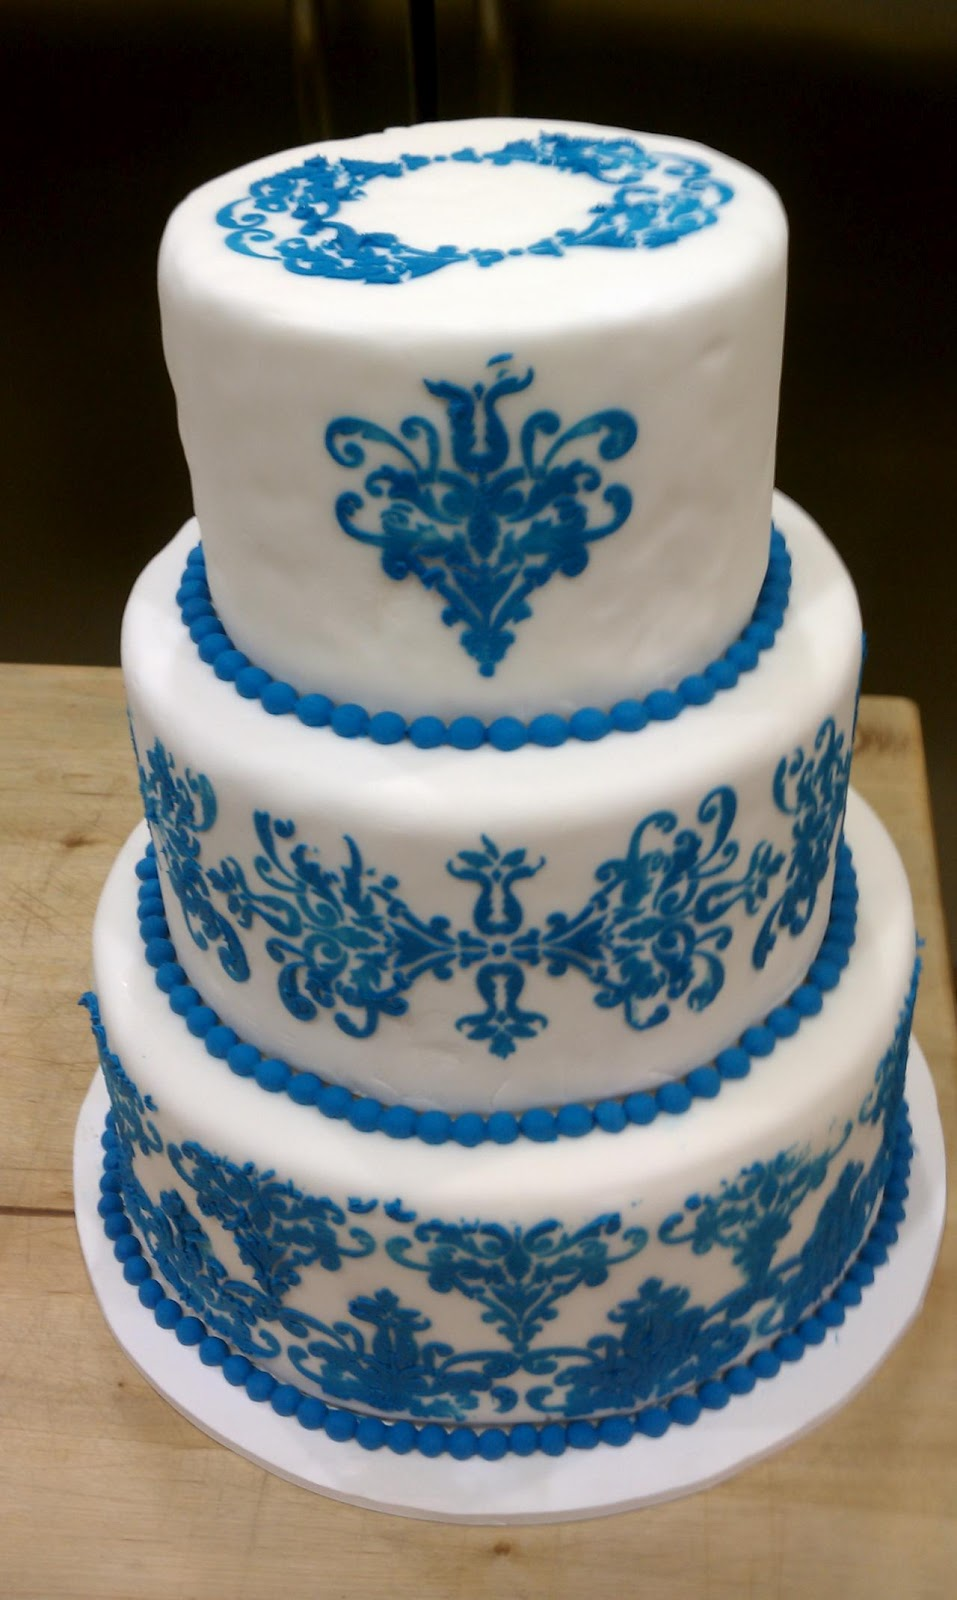 pictures of blue and white wedding cakes wedding cakes pictures blue and white wedding cakes 18393